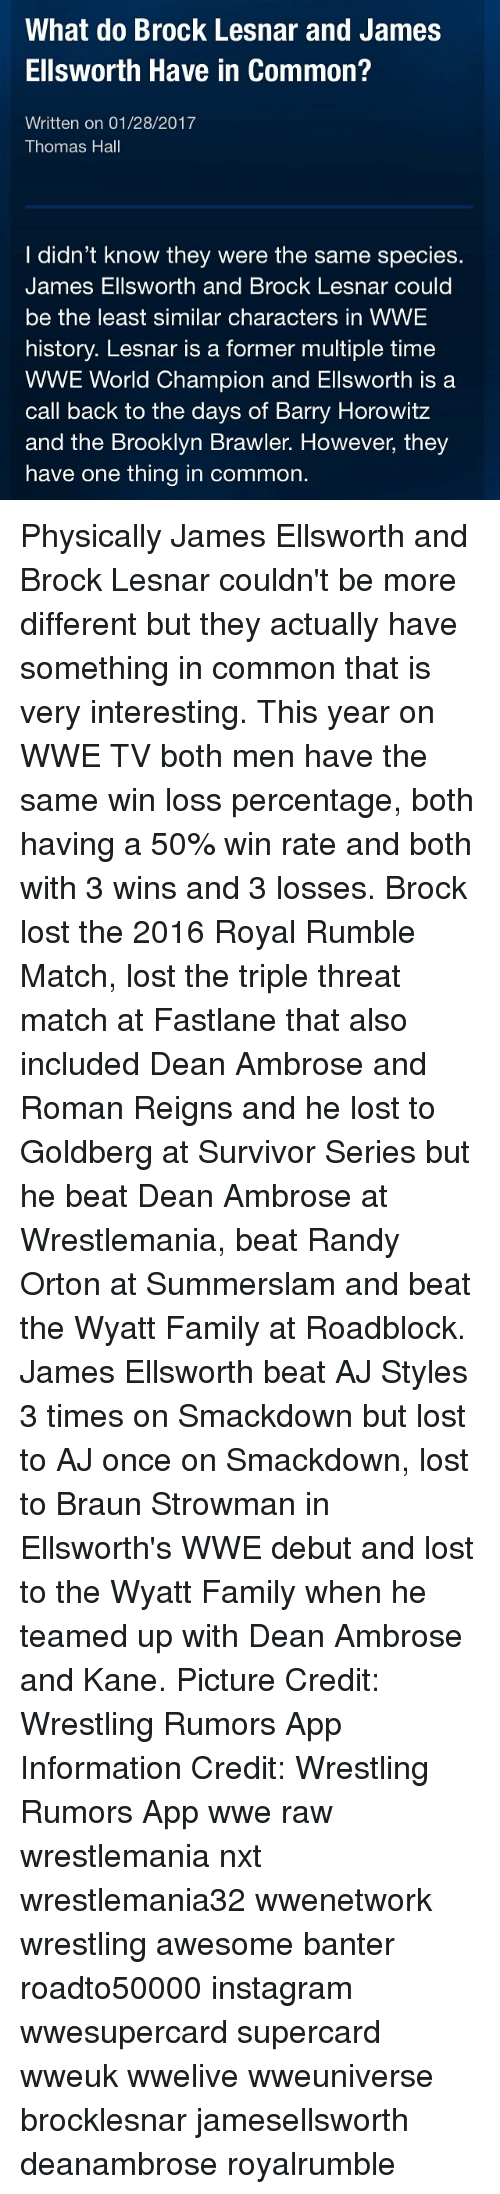 Memes, Randy Orton, and Roman Reigns: What do Brock Lesnar and James  Ellsworth Have in Common?  Written on 01/28/2017  Thomas Hall  I didn't know they were the same species.  James Ellsworth and Brock Lesnar could  be the least similar characters in WWE  history. Lesnar is a former multiple time  WWE World Champion and Ellsworth is a  call back to the days of Barry Horowitz  and the Brooklyn Brawler. However, they  have one thing in common. Physically James Ellsworth and Brock Lesnar couldn't be more different but they actually have something in common that is very interesting. This year on WWE TV both men have the same win loss percentage, both having a 50% win rate and both with 3 wins and 3 losses. Brock lost the 2016 Royal Rumble Match, lost the triple threat match at Fastlane that also included Dean Ambrose and Roman Reigns and he lost to Goldberg at Survivor Series but he beat Dean Ambrose at Wrestlemania, beat Randy Orton at Summerslam and beat the Wyatt Family at Roadblock. James Ellsworth beat AJ Styles 3 times on Smackdown but lost to AJ once on Smackdown, lost to Braun Strowman in Ellsworth's WWE debut and lost to the Wyatt Family when he teamed up with Dean Ambrose and Kane. Picture Credit: Wrestling Rumors App Information Credit: Wrestling Rumors App wwe raw wrestlemania nxt wrestlemania32 wwenetwork wrestling awesome banter roadto50000 instagram wwesupercard supercard wweuk wwelive wweuniverse brocklesnar jamesellsworth deanambrose royalrumble